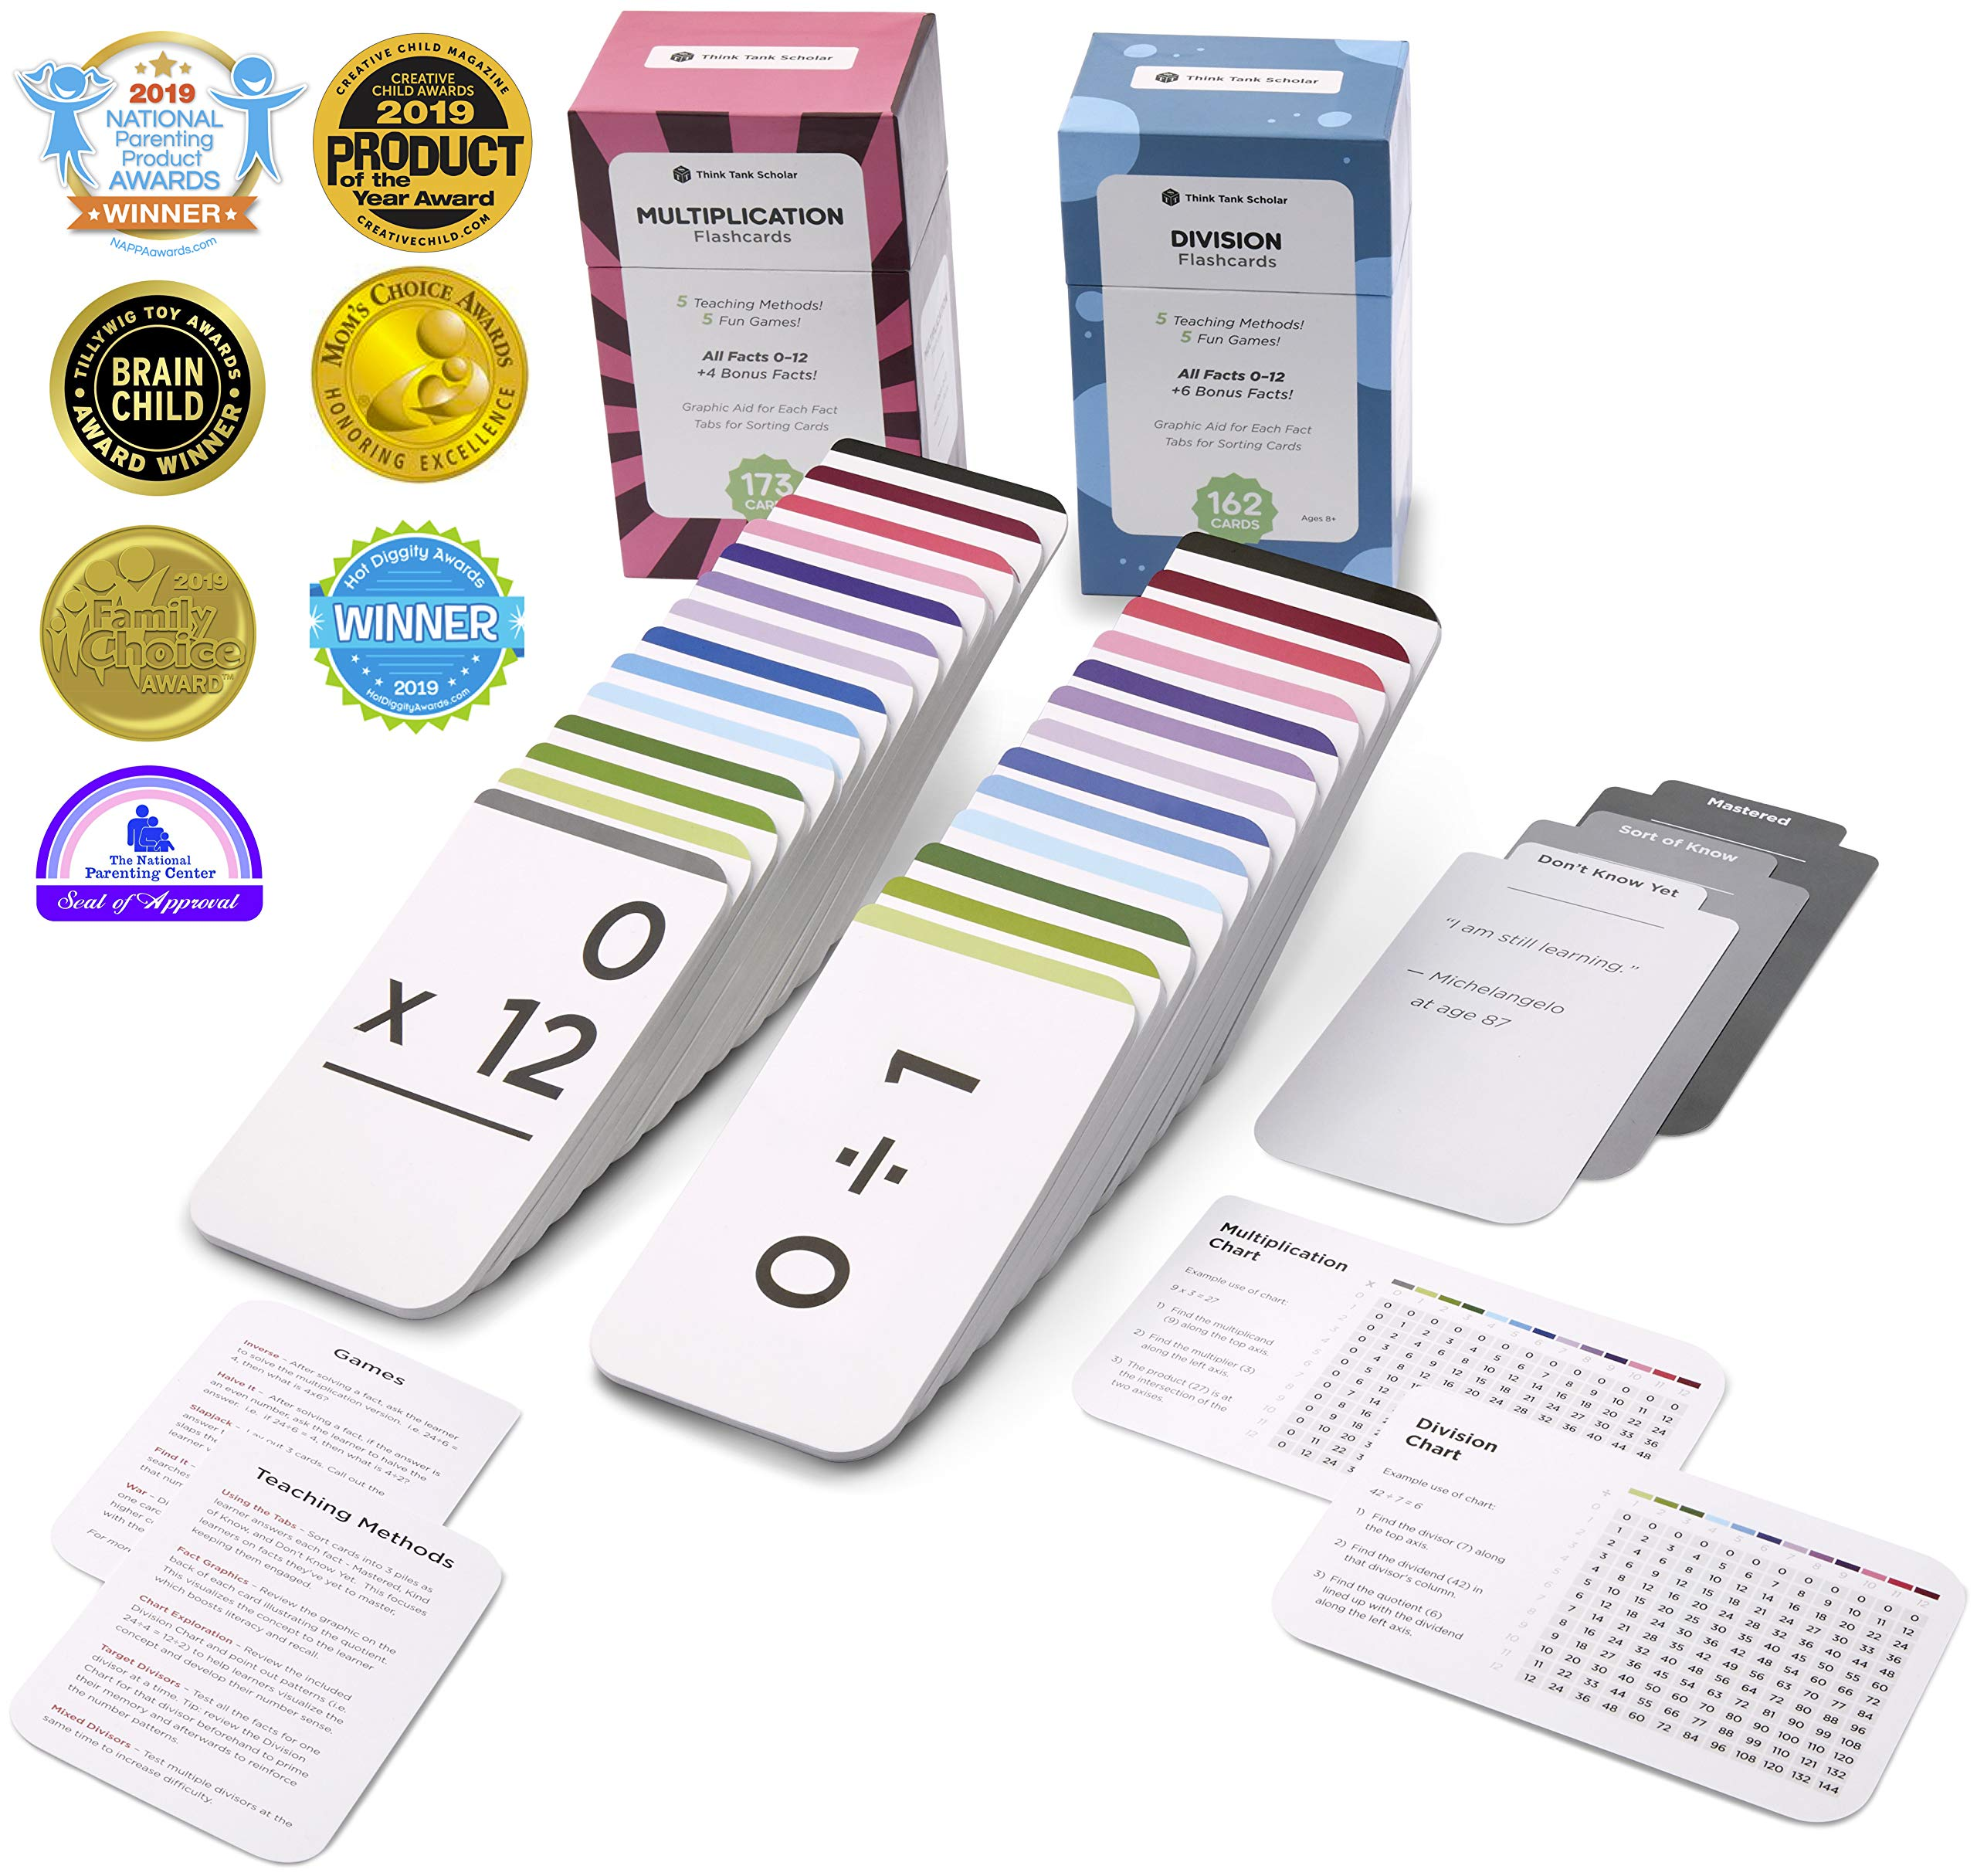 Think Tank Scholar 335 Multiplication and Division Flash Cards | All Facts 0-12 | Best for Kids in 3rd, 4th, 5th & 6th Grade by Think Tank Scholar